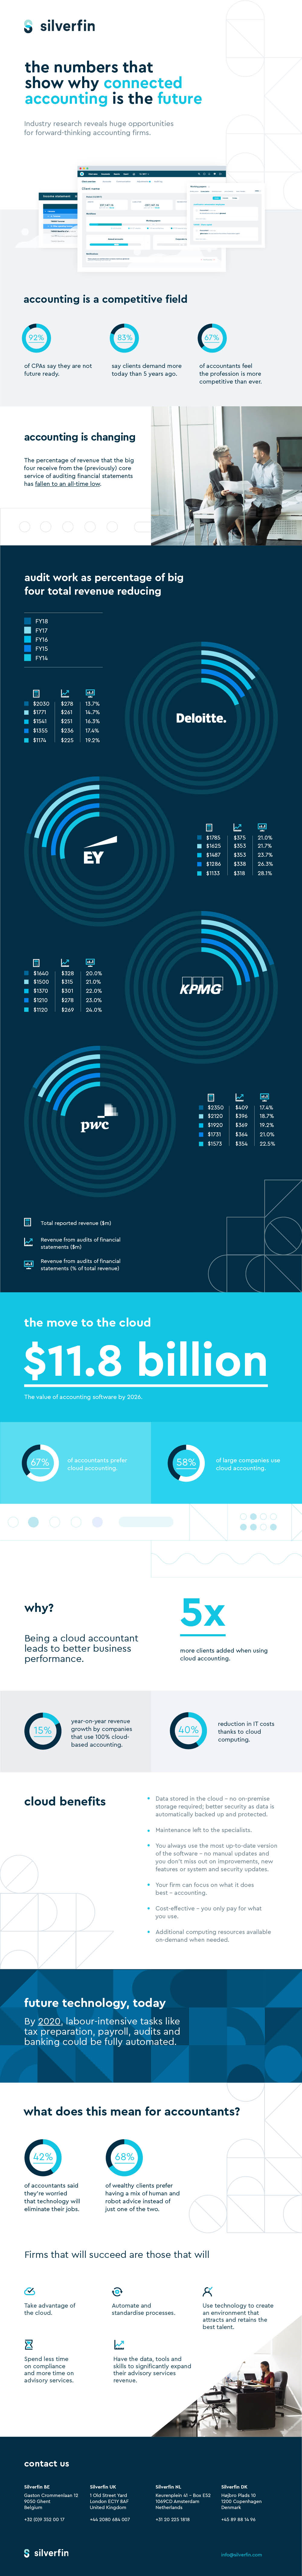 SF - Infographic - The numbers that show why connected accounting is the future_V4_EN